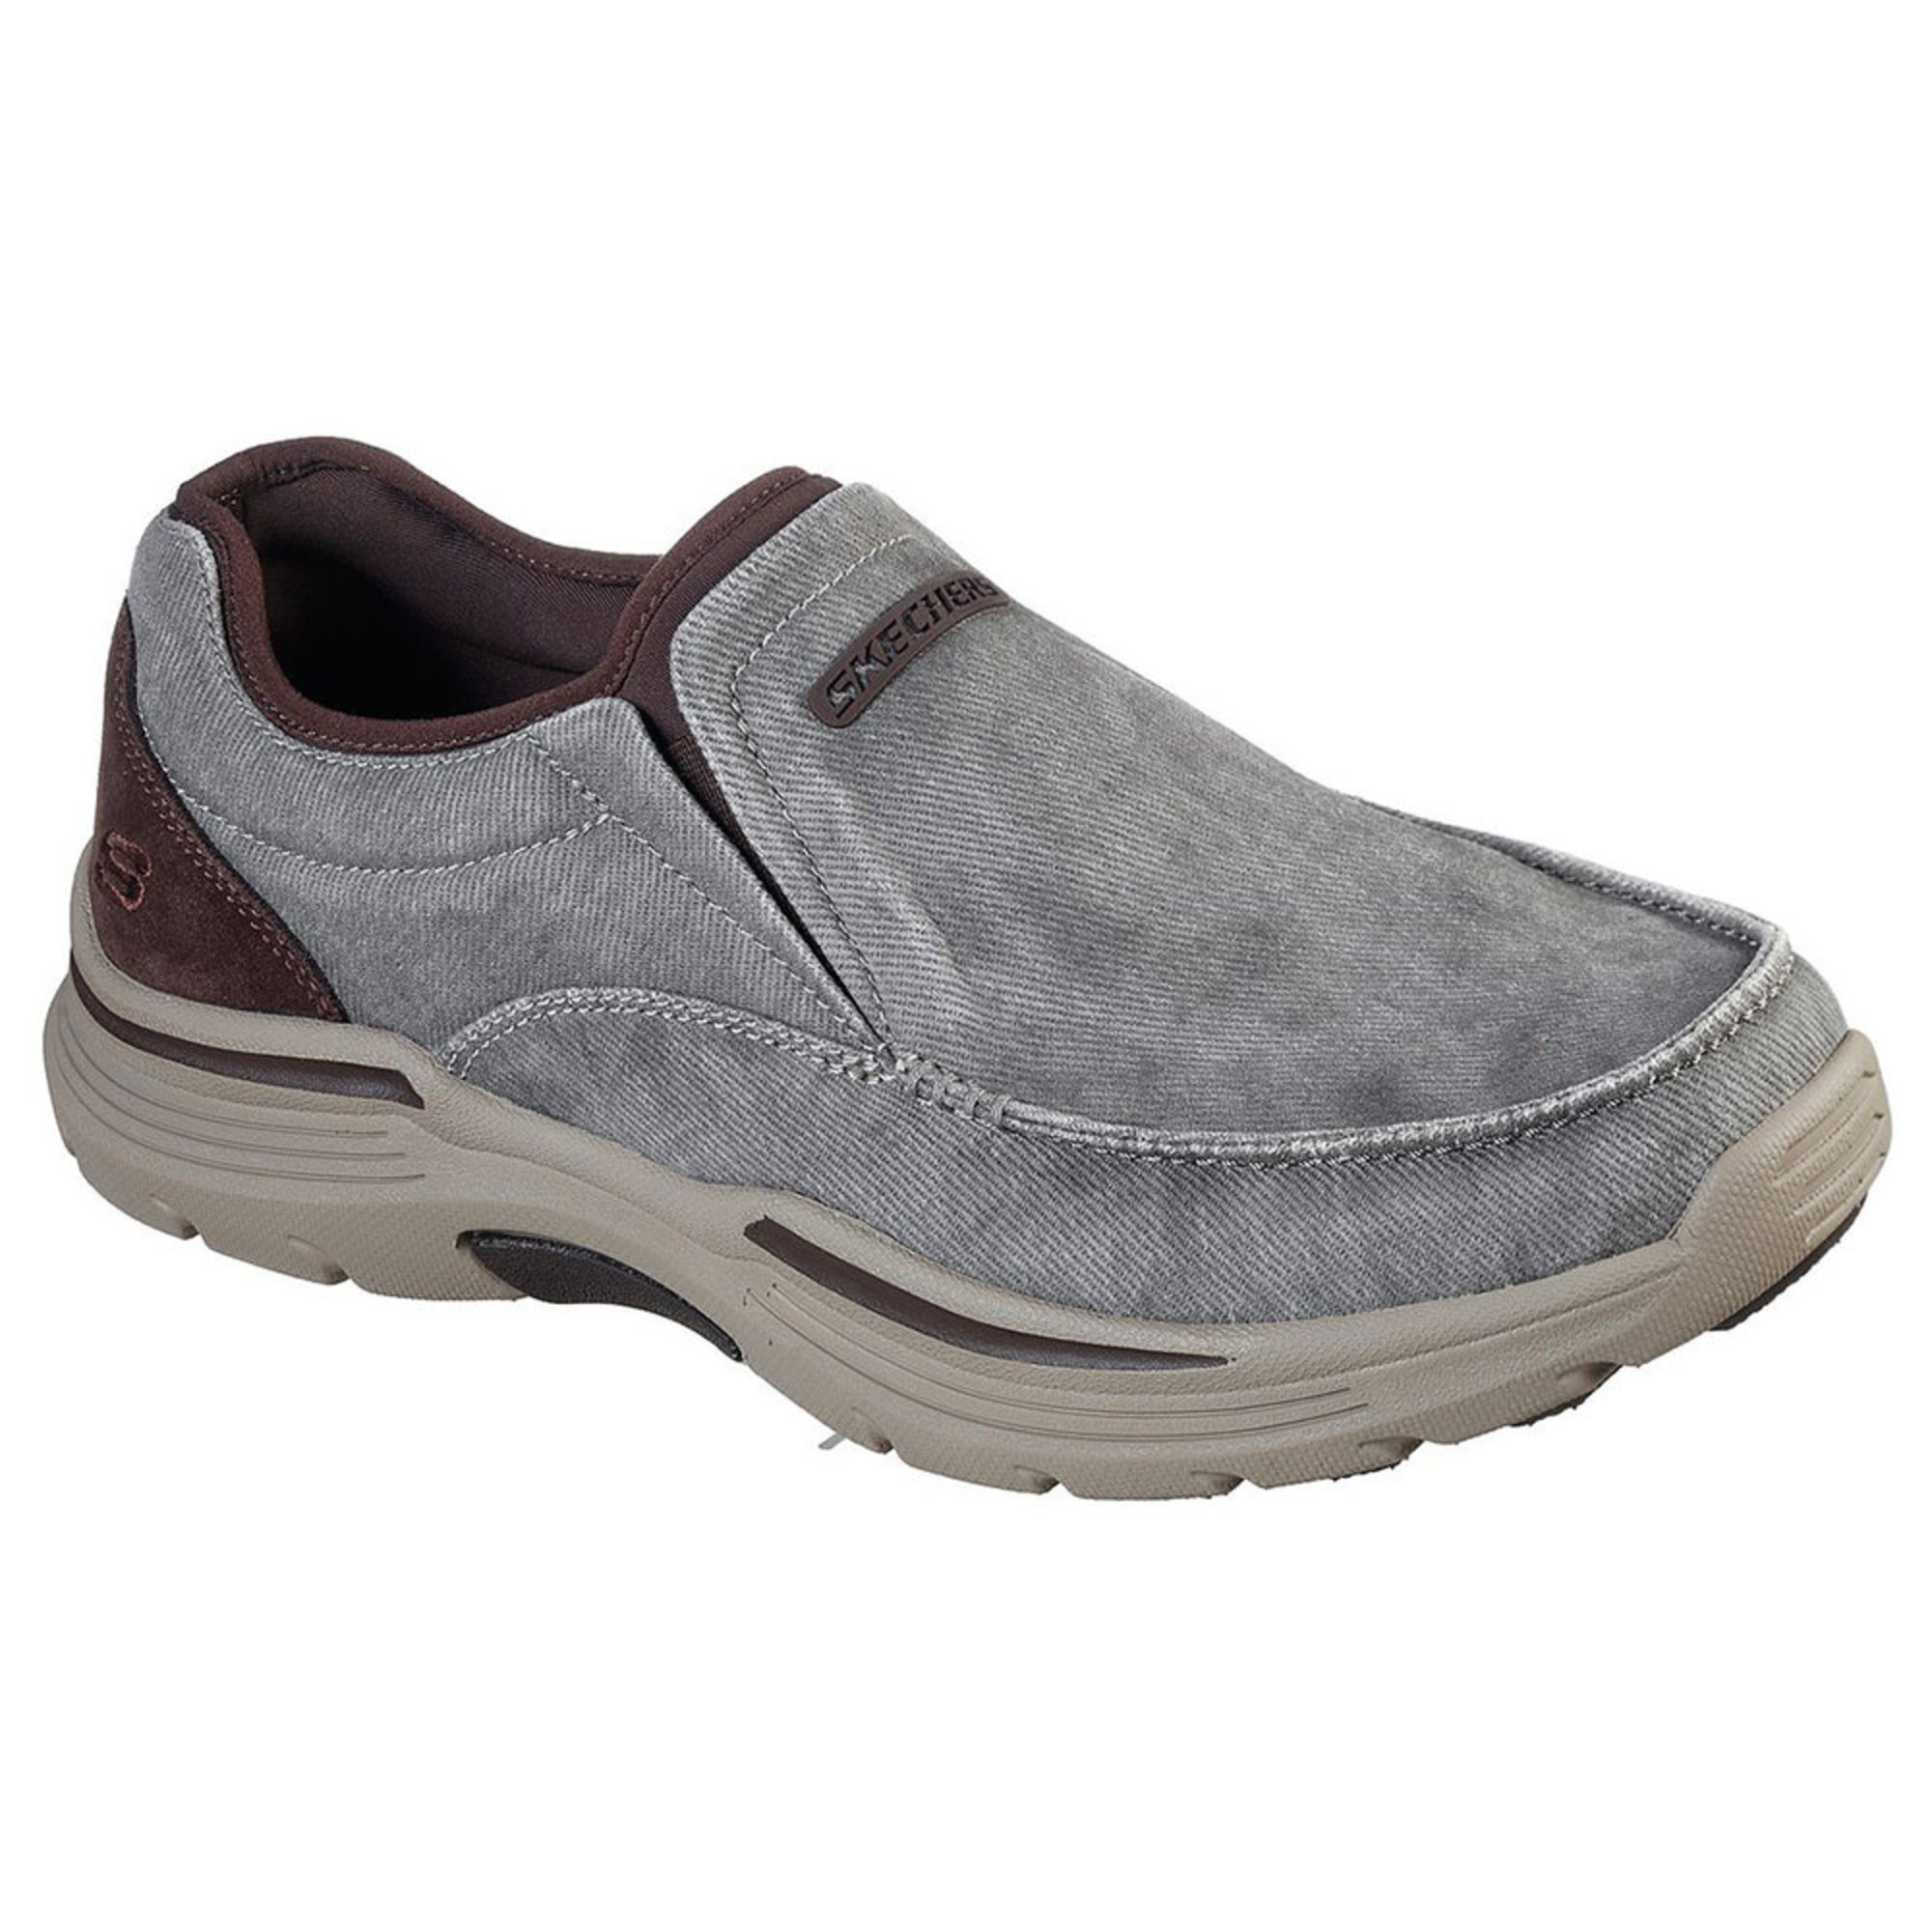 Expended Relfen Casual Canvas Slip-on